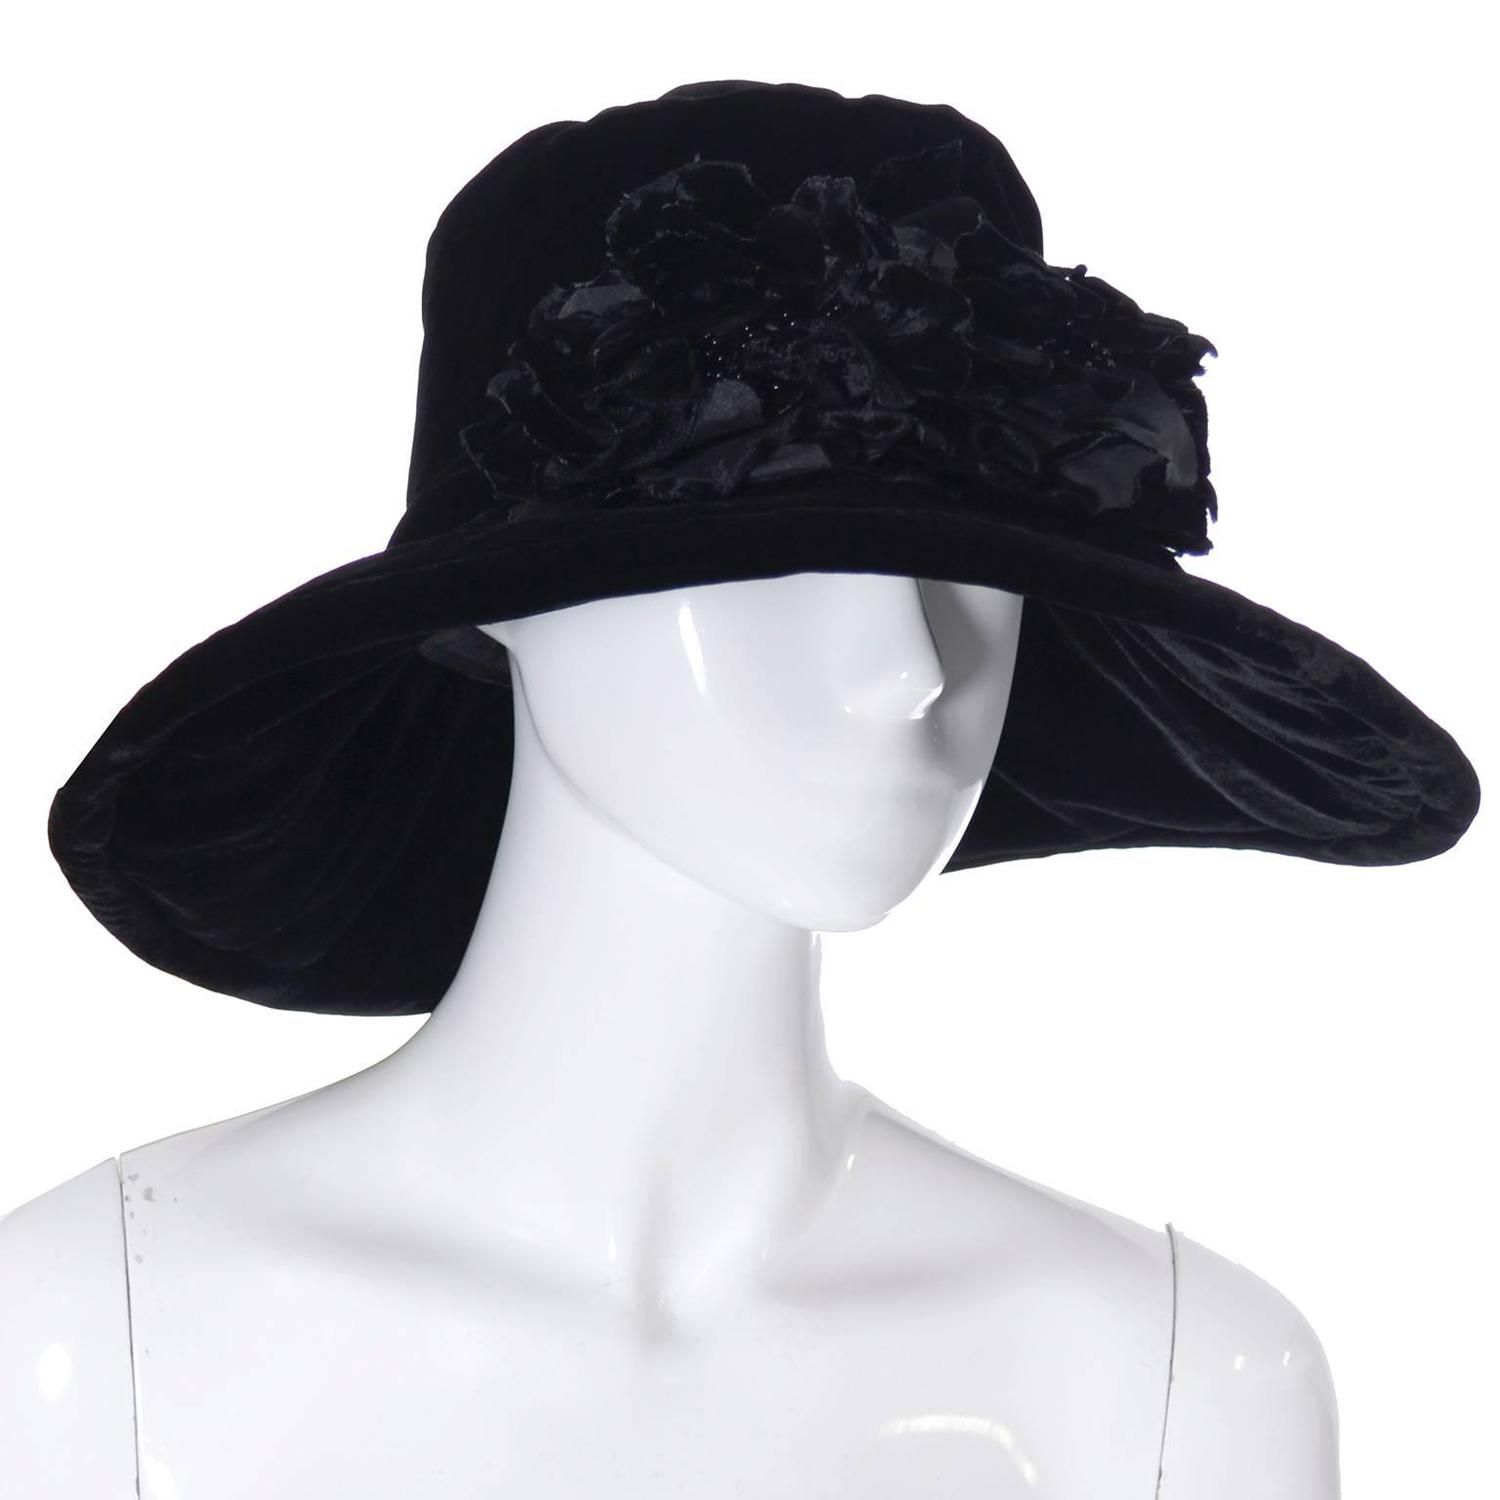 Donna Karan New York Vintage Hat Black Velvet Beaded Flowers Wide Brim NEW  Tags  f05f1c509946